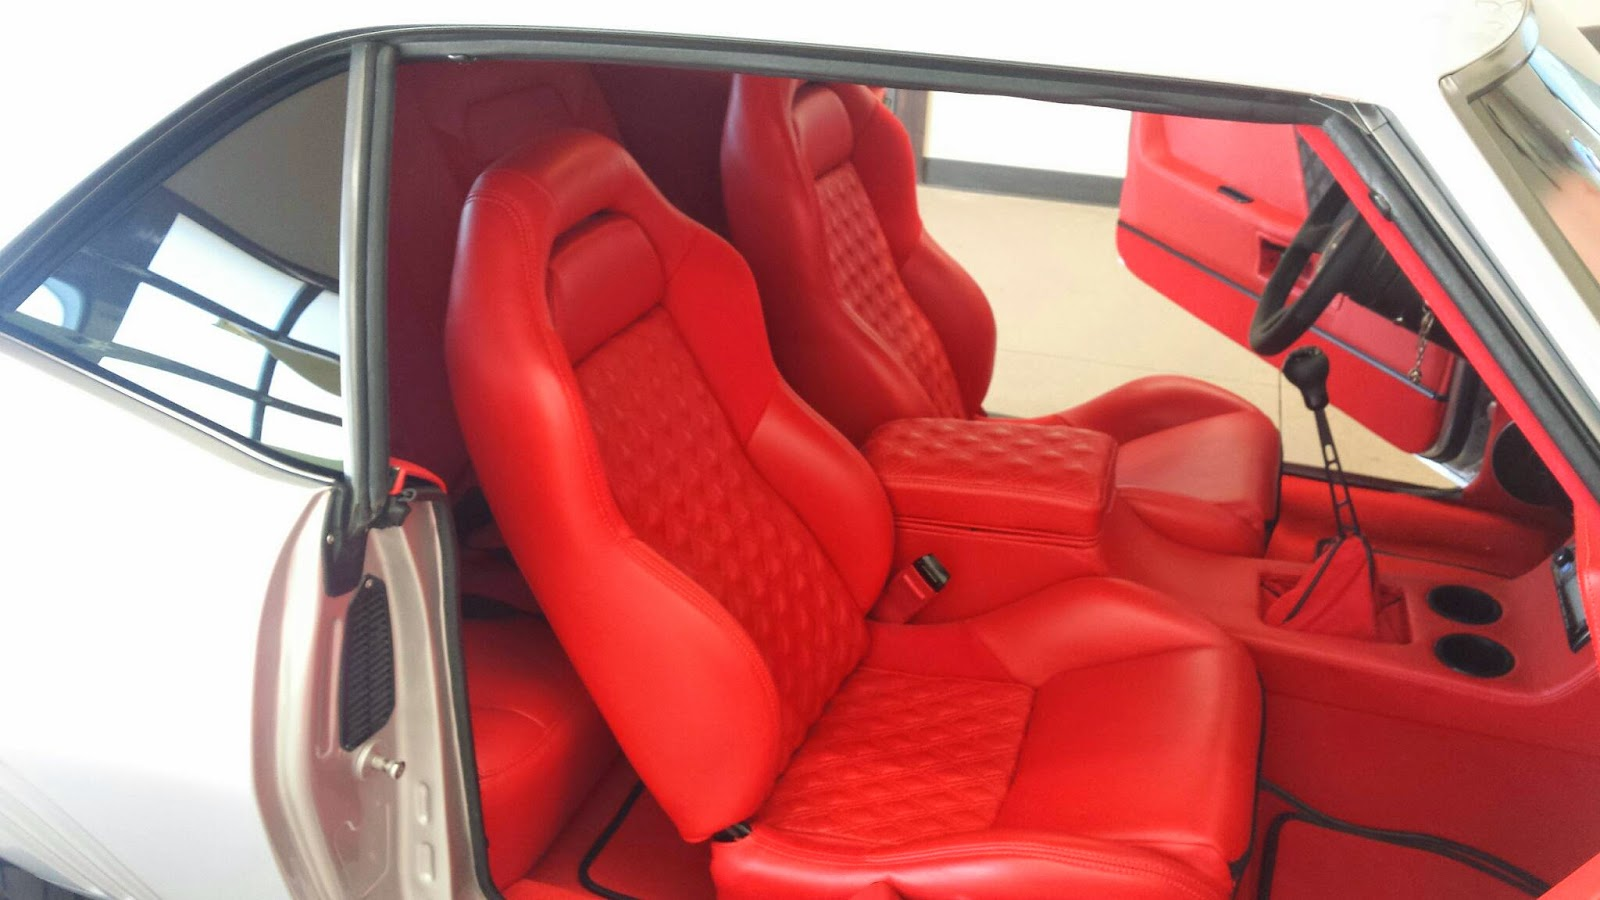 distinct customs camaro engraved motor and full red italian leather red leather. Black Bedroom Furniture Sets. Home Design Ideas